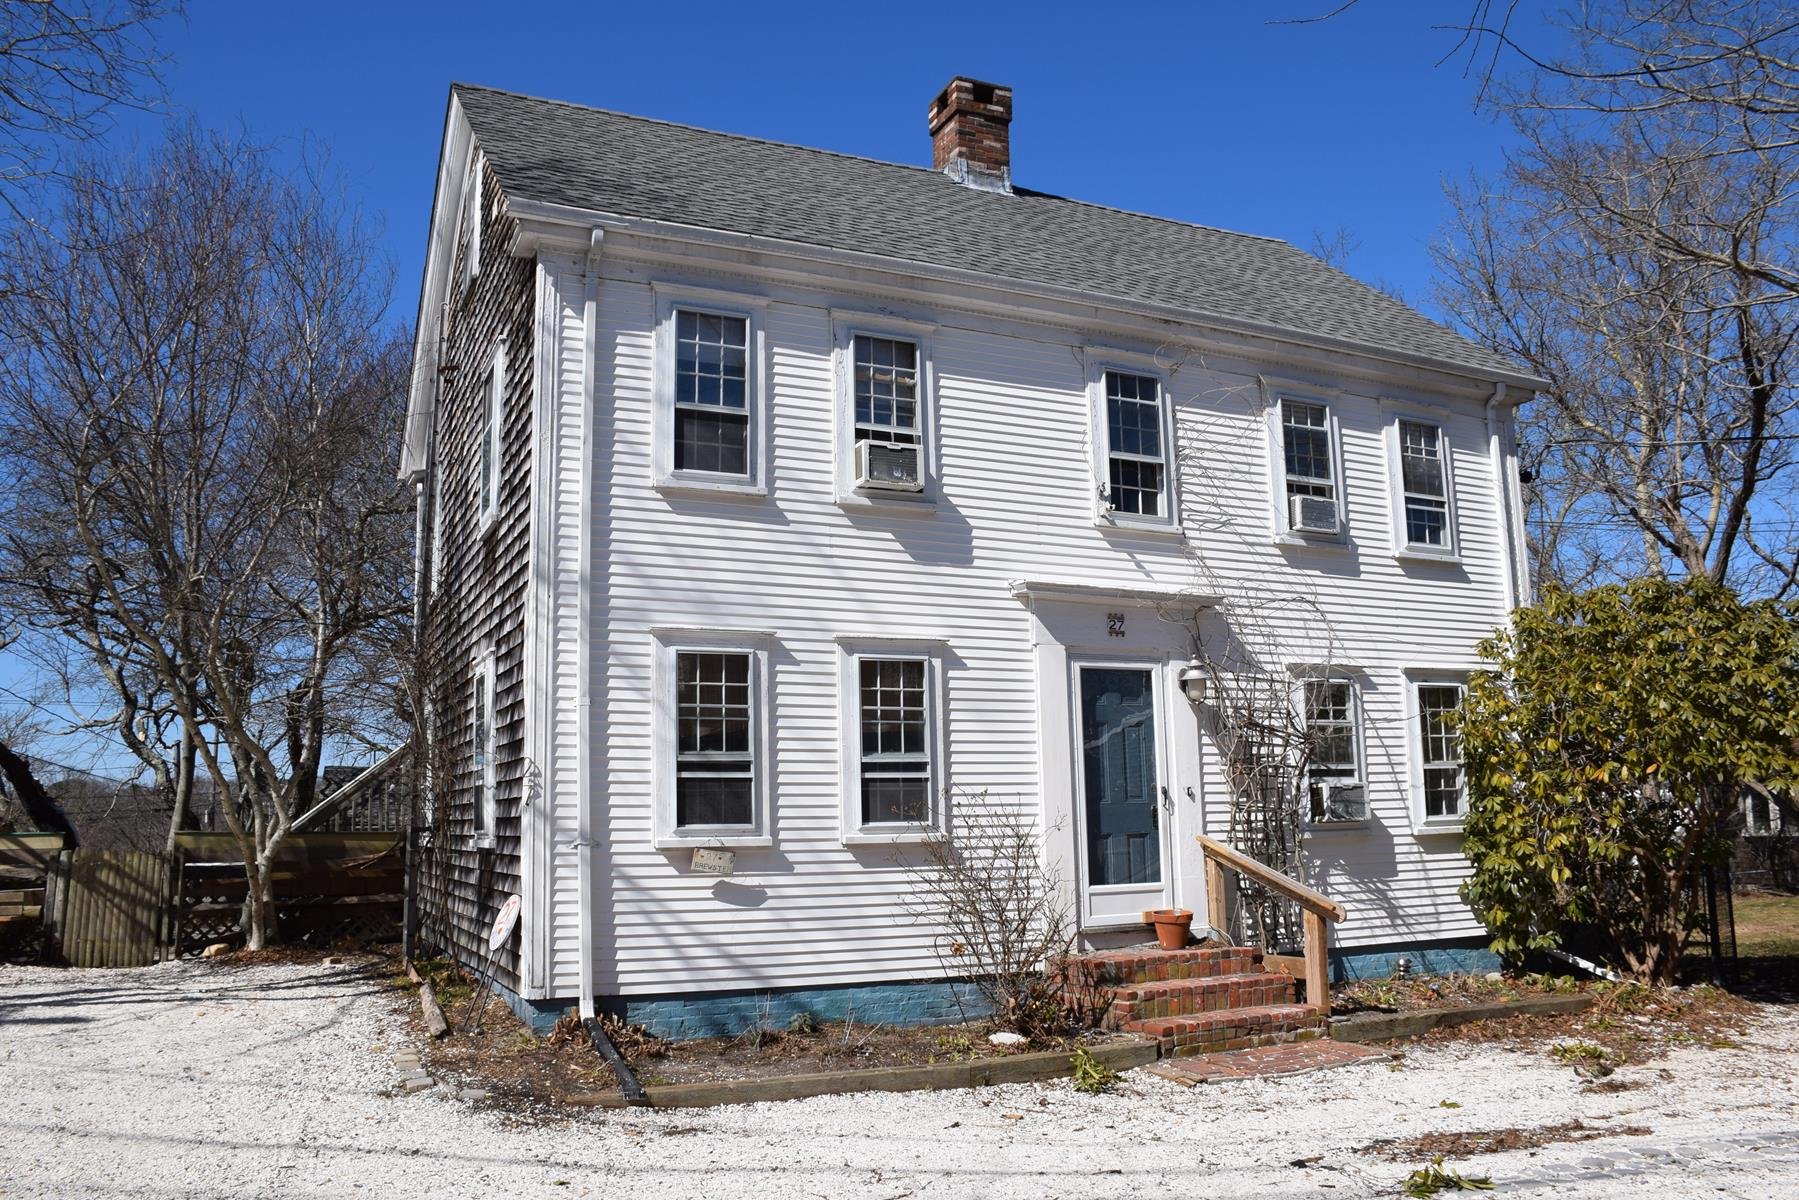 Multi-Family Home for Sale at 3 Family Investment Opportunity 27 Brewster Street Provincetown, Massachusetts, 02657 United States